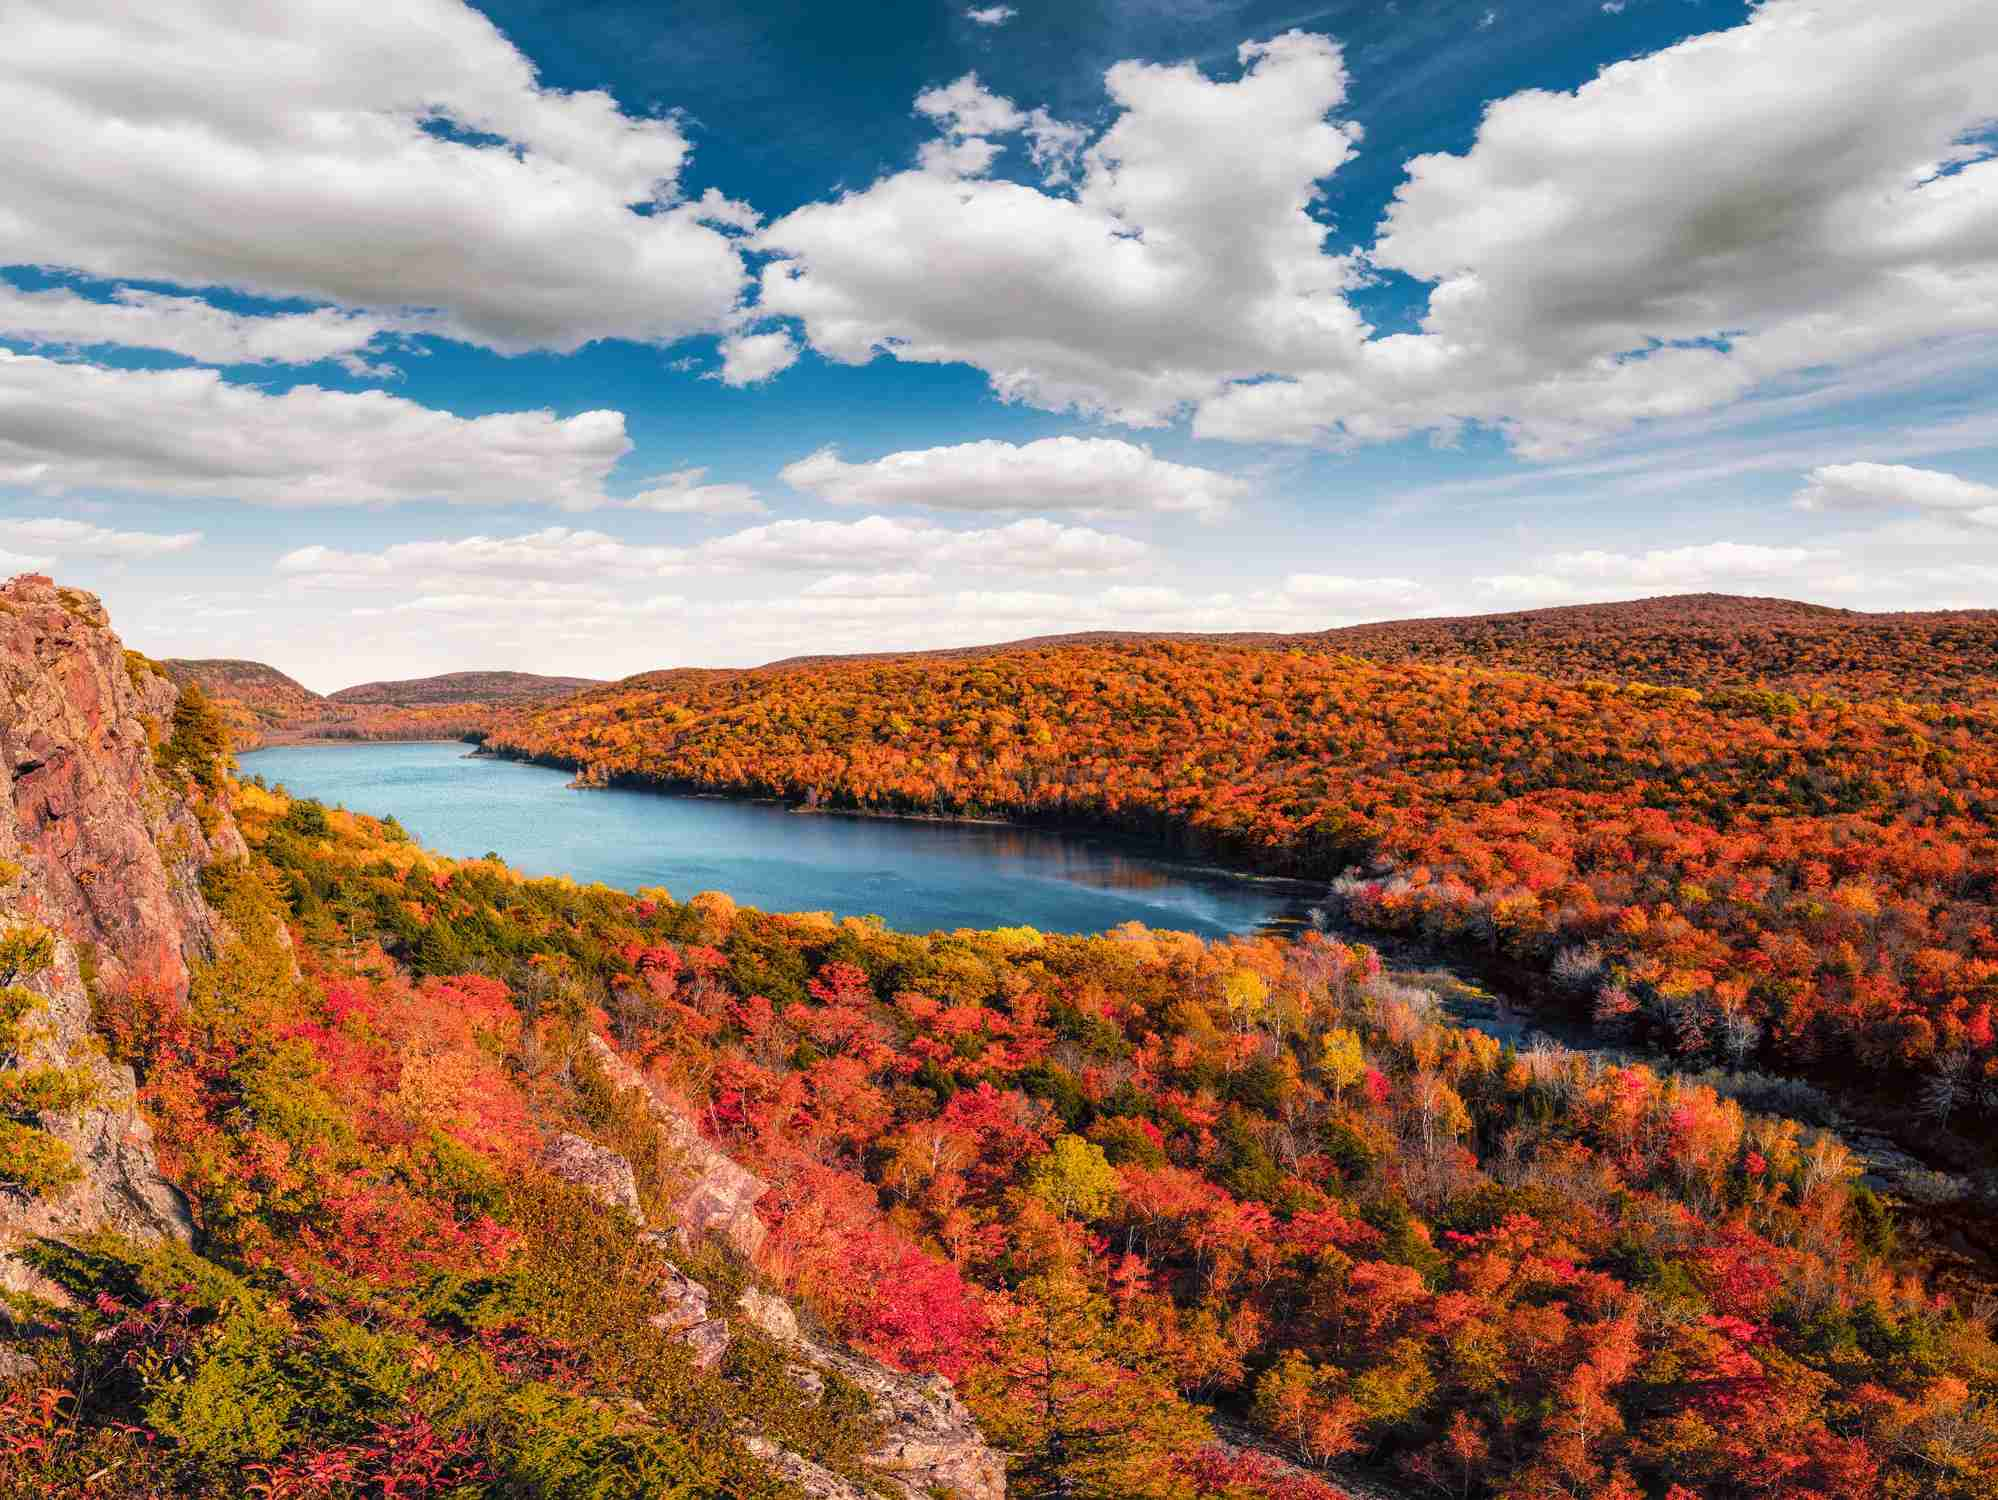 Lake of the Clouds, Porcupine Mountains in Fall Color, Upper Michigan Peninsula.